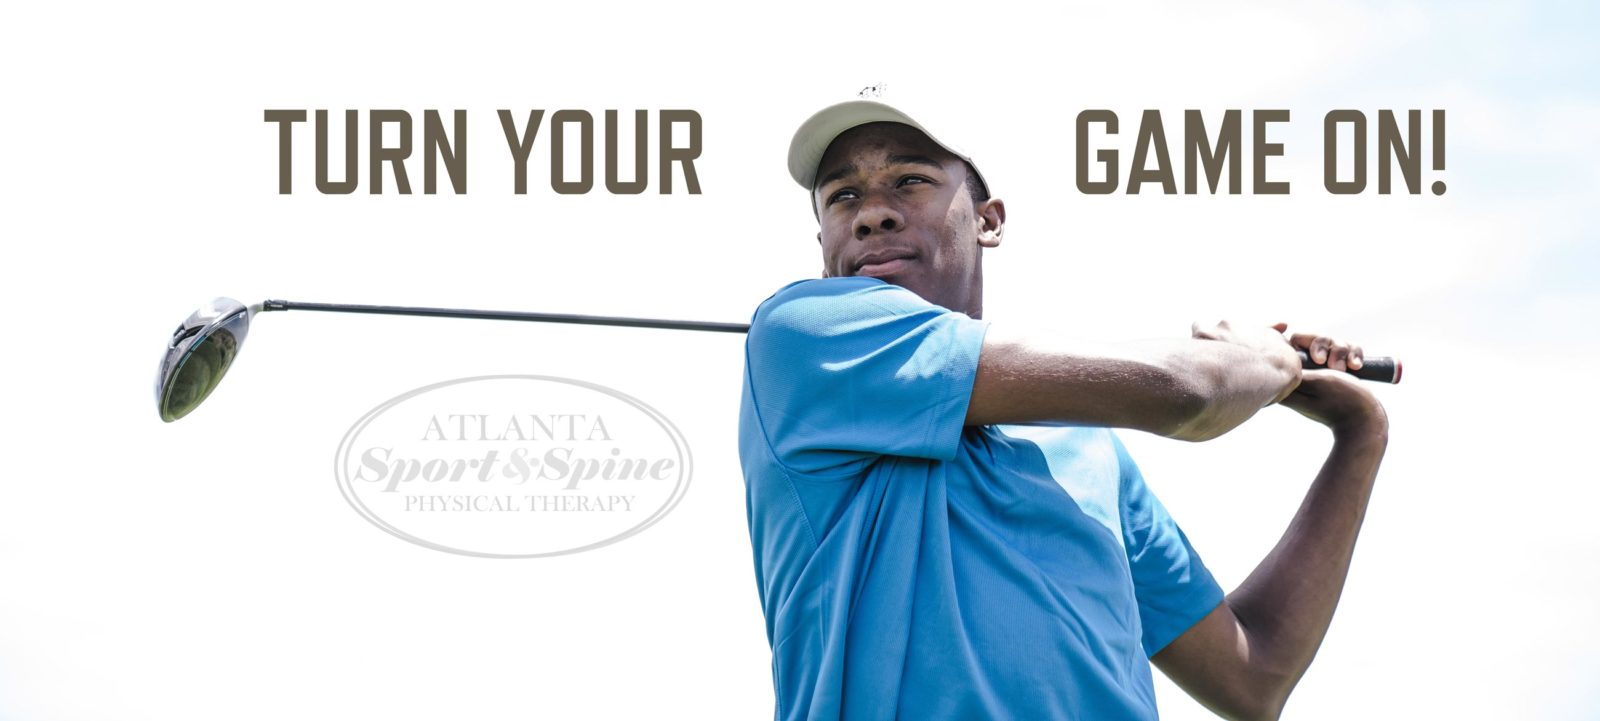 improve your game by increasing your driving distance and club head speed